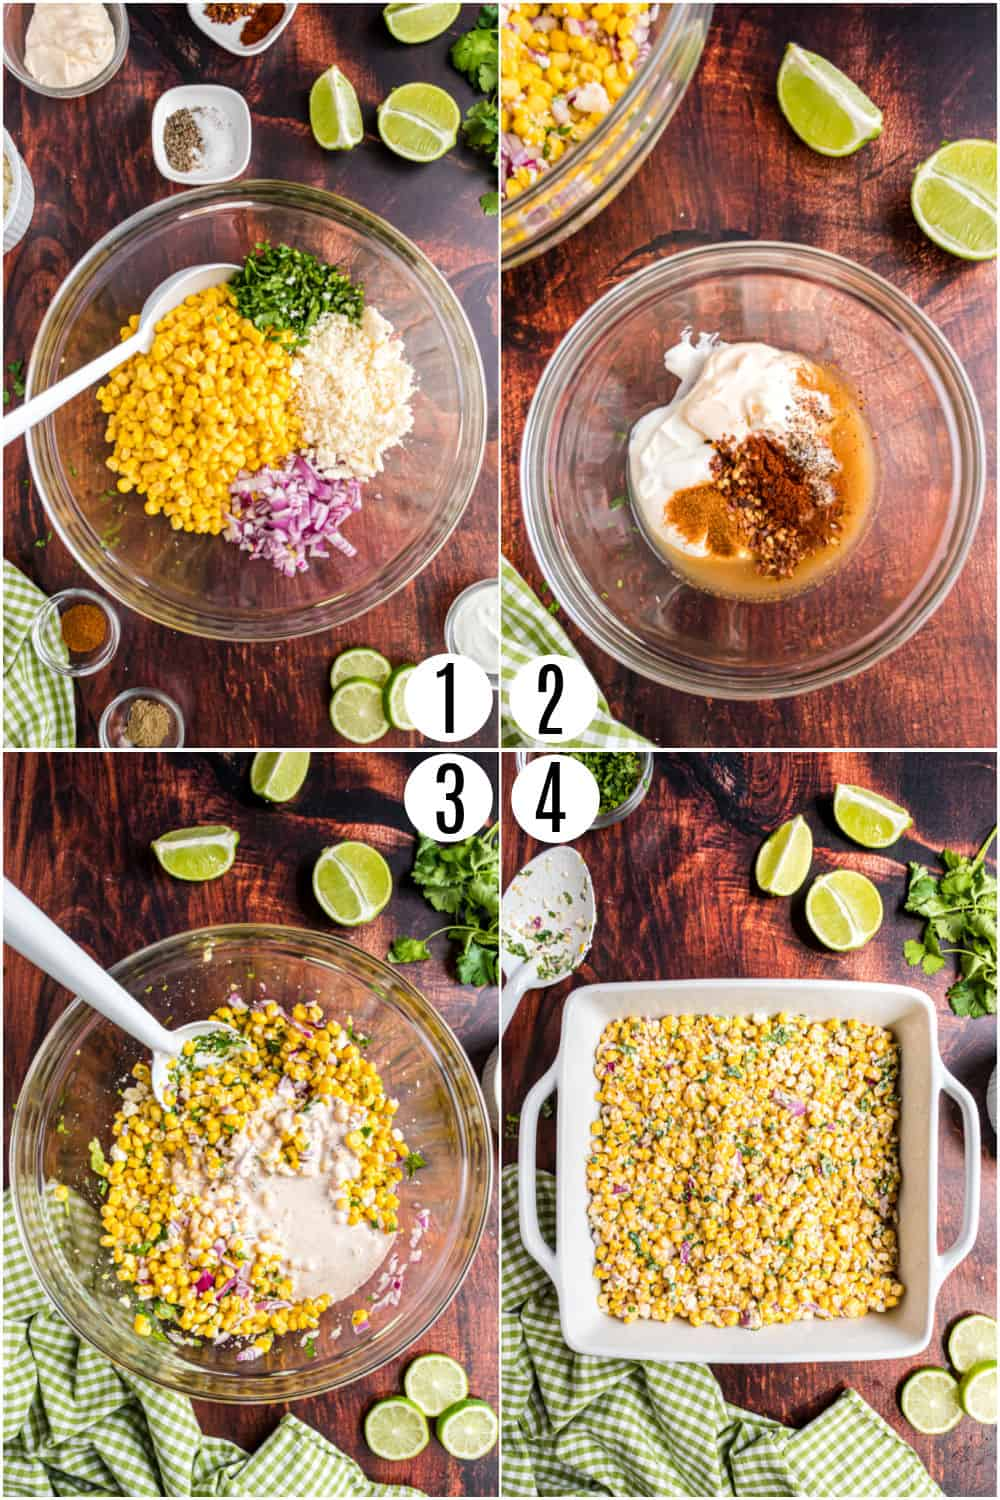 Step by step photos showing how to make mexican street corn.